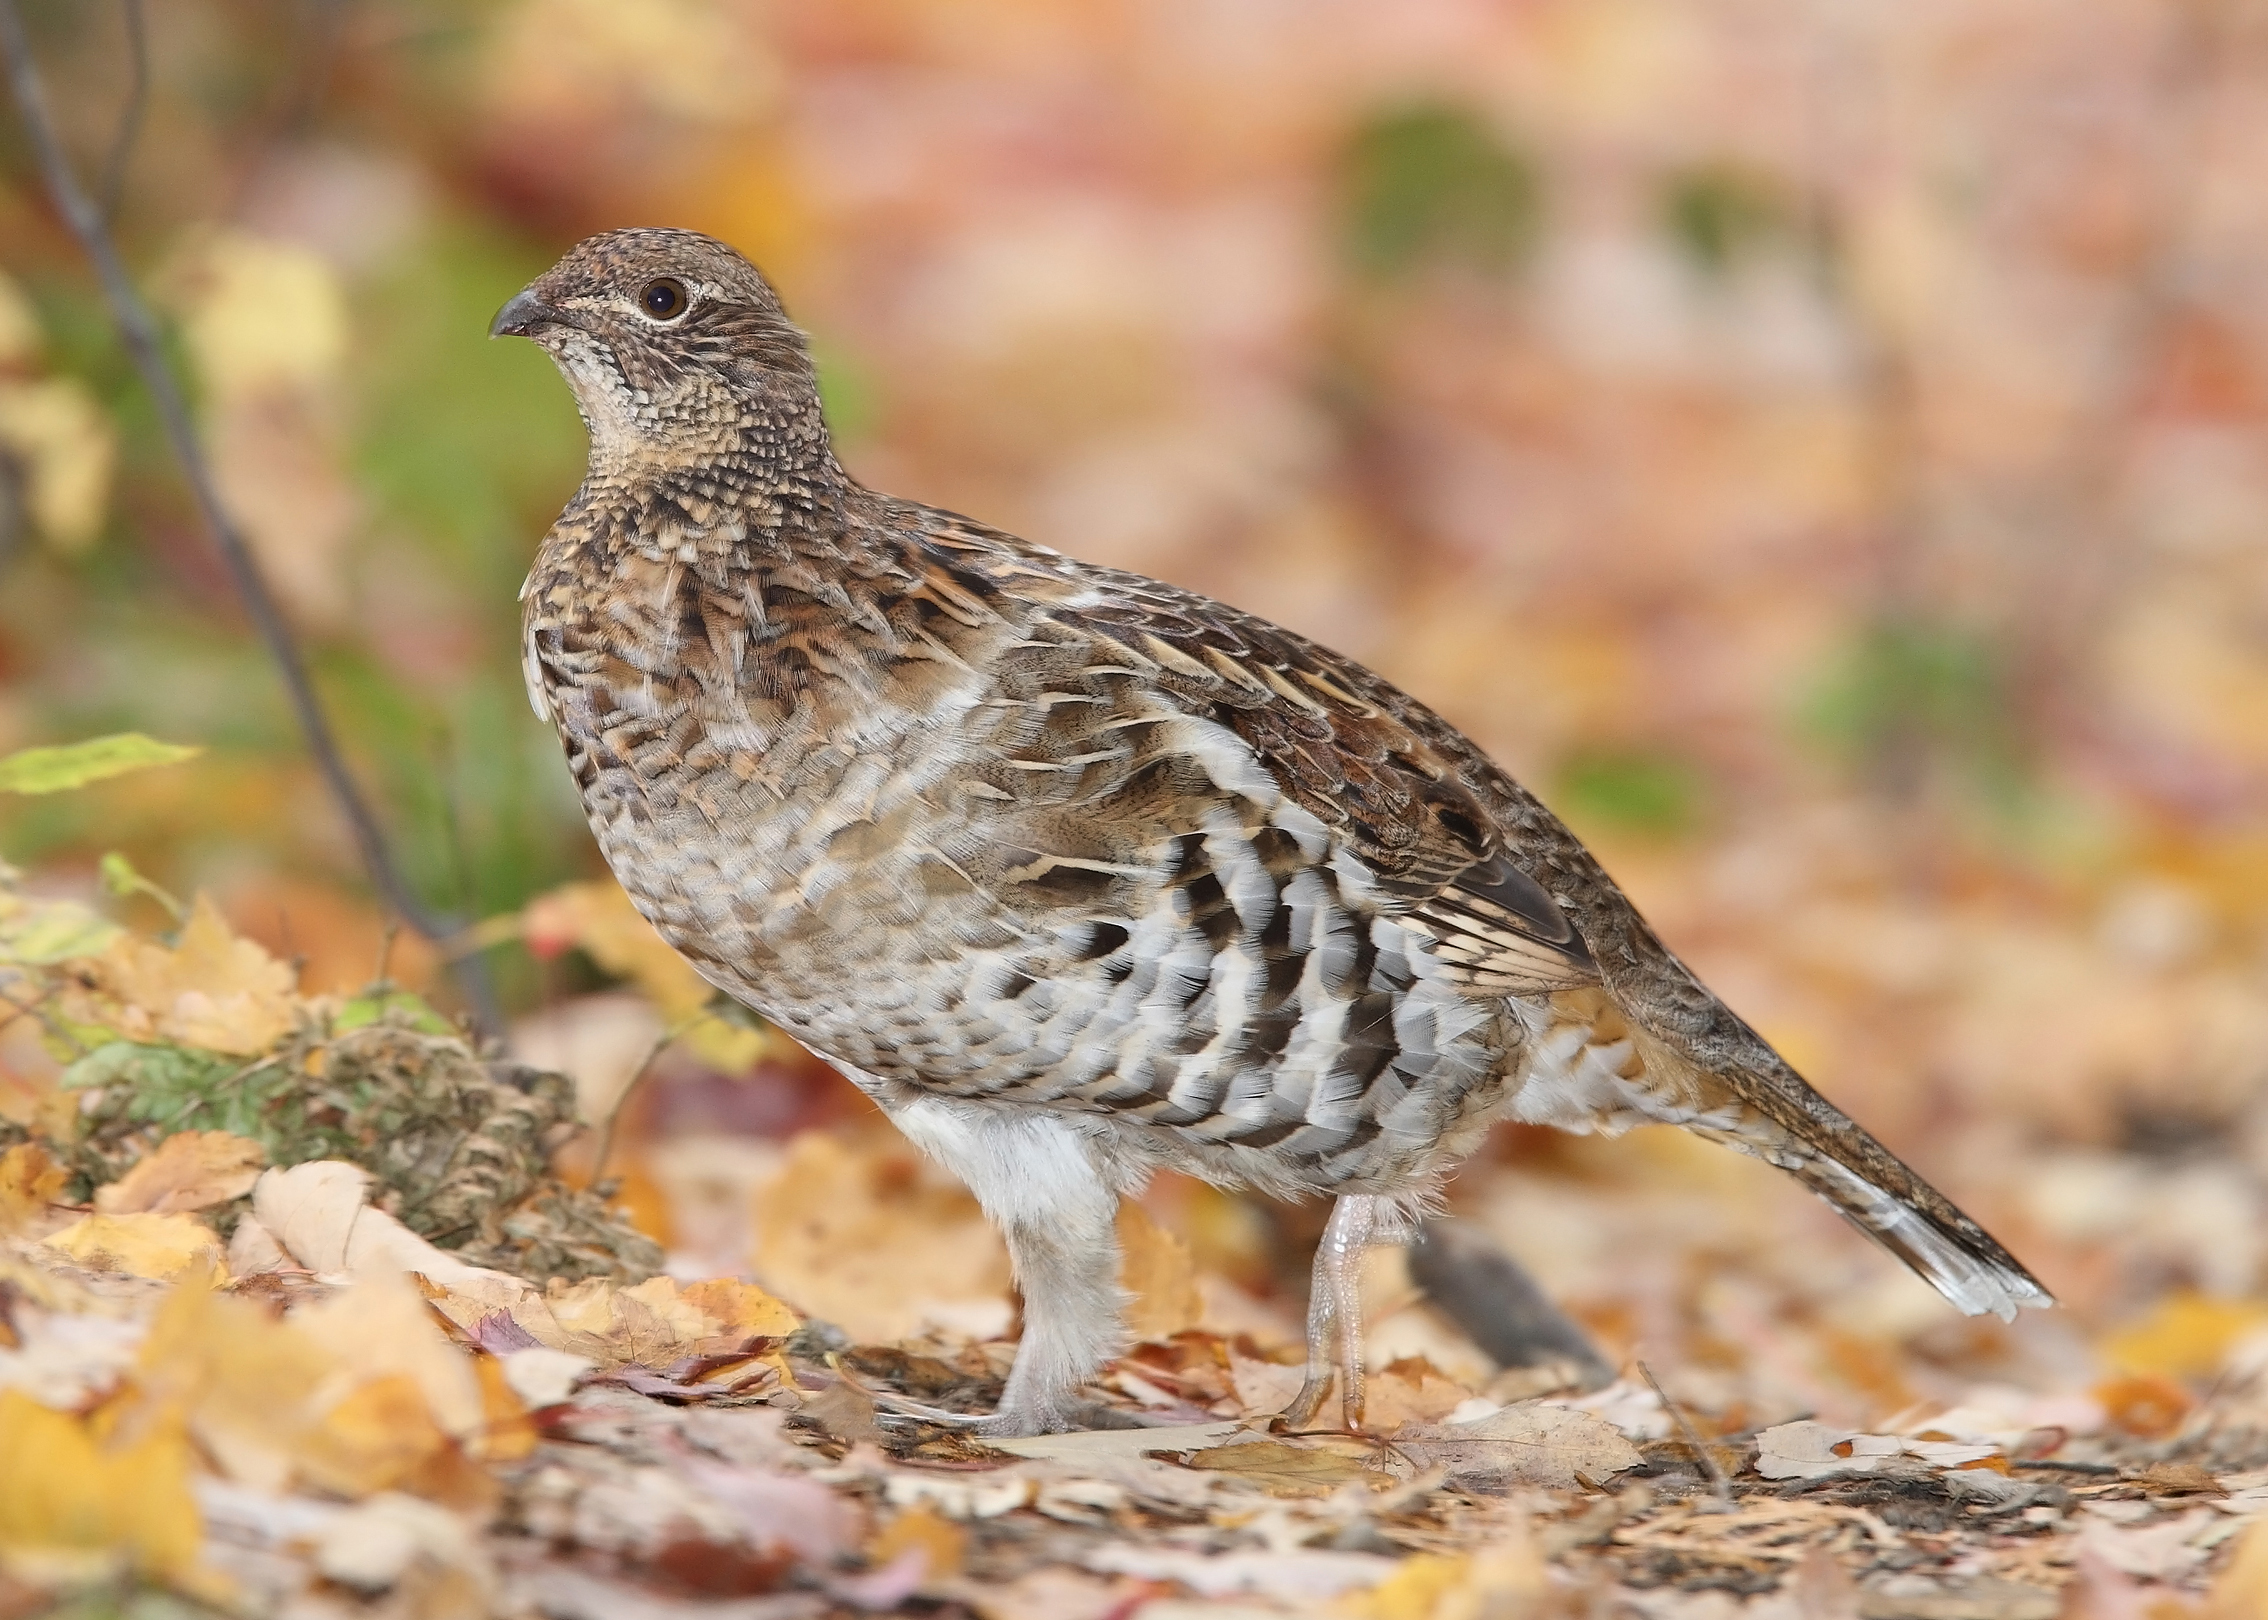 the ruffed grouse is the official state bird of pennsylvania